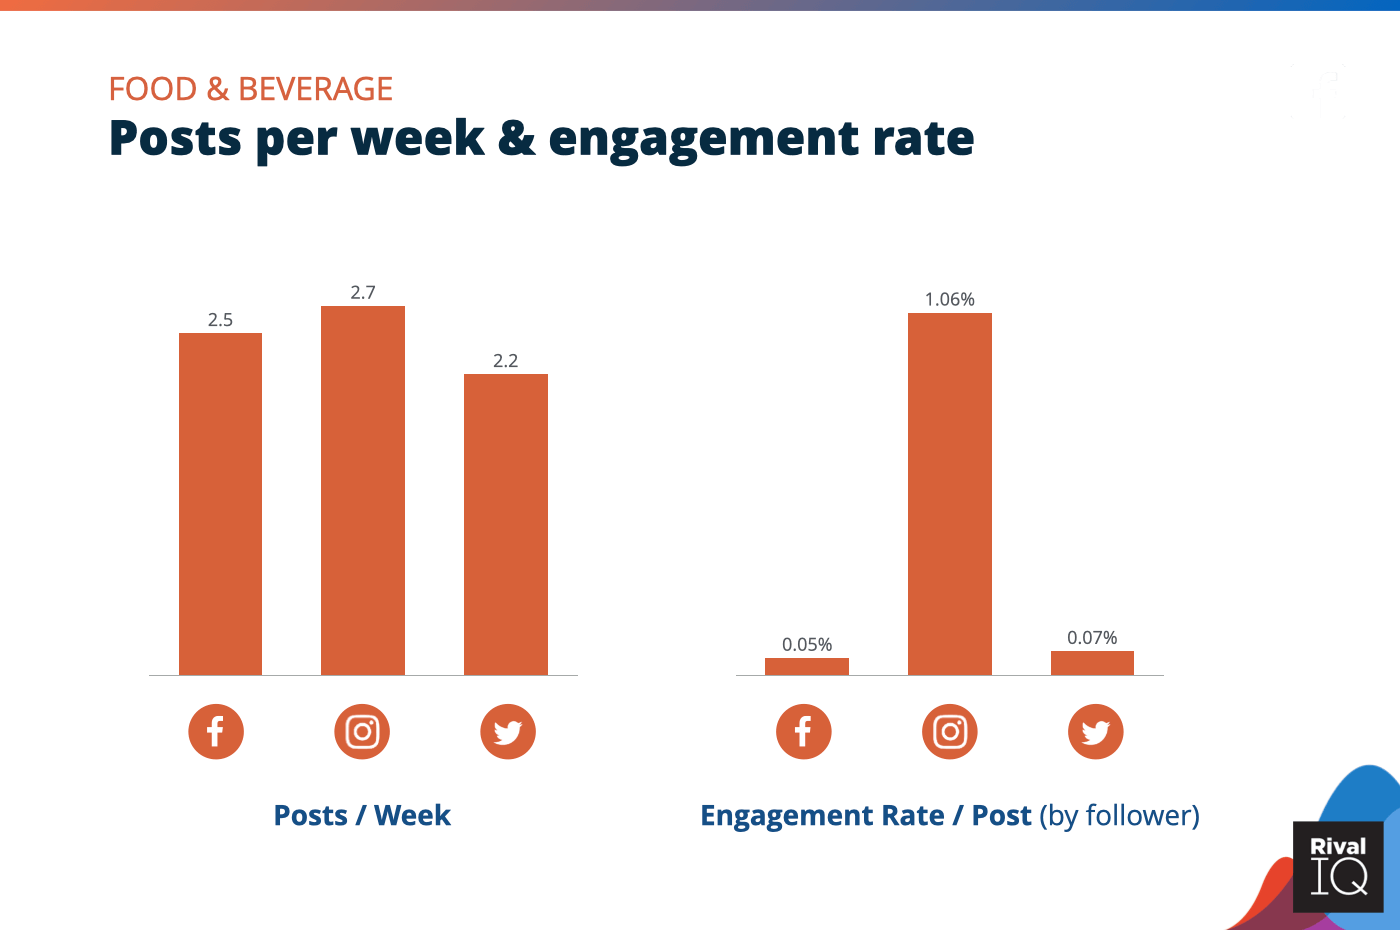 Chart of social media benchmarks for Posts per week and engagement rate per post across all channels, Food & Beverage